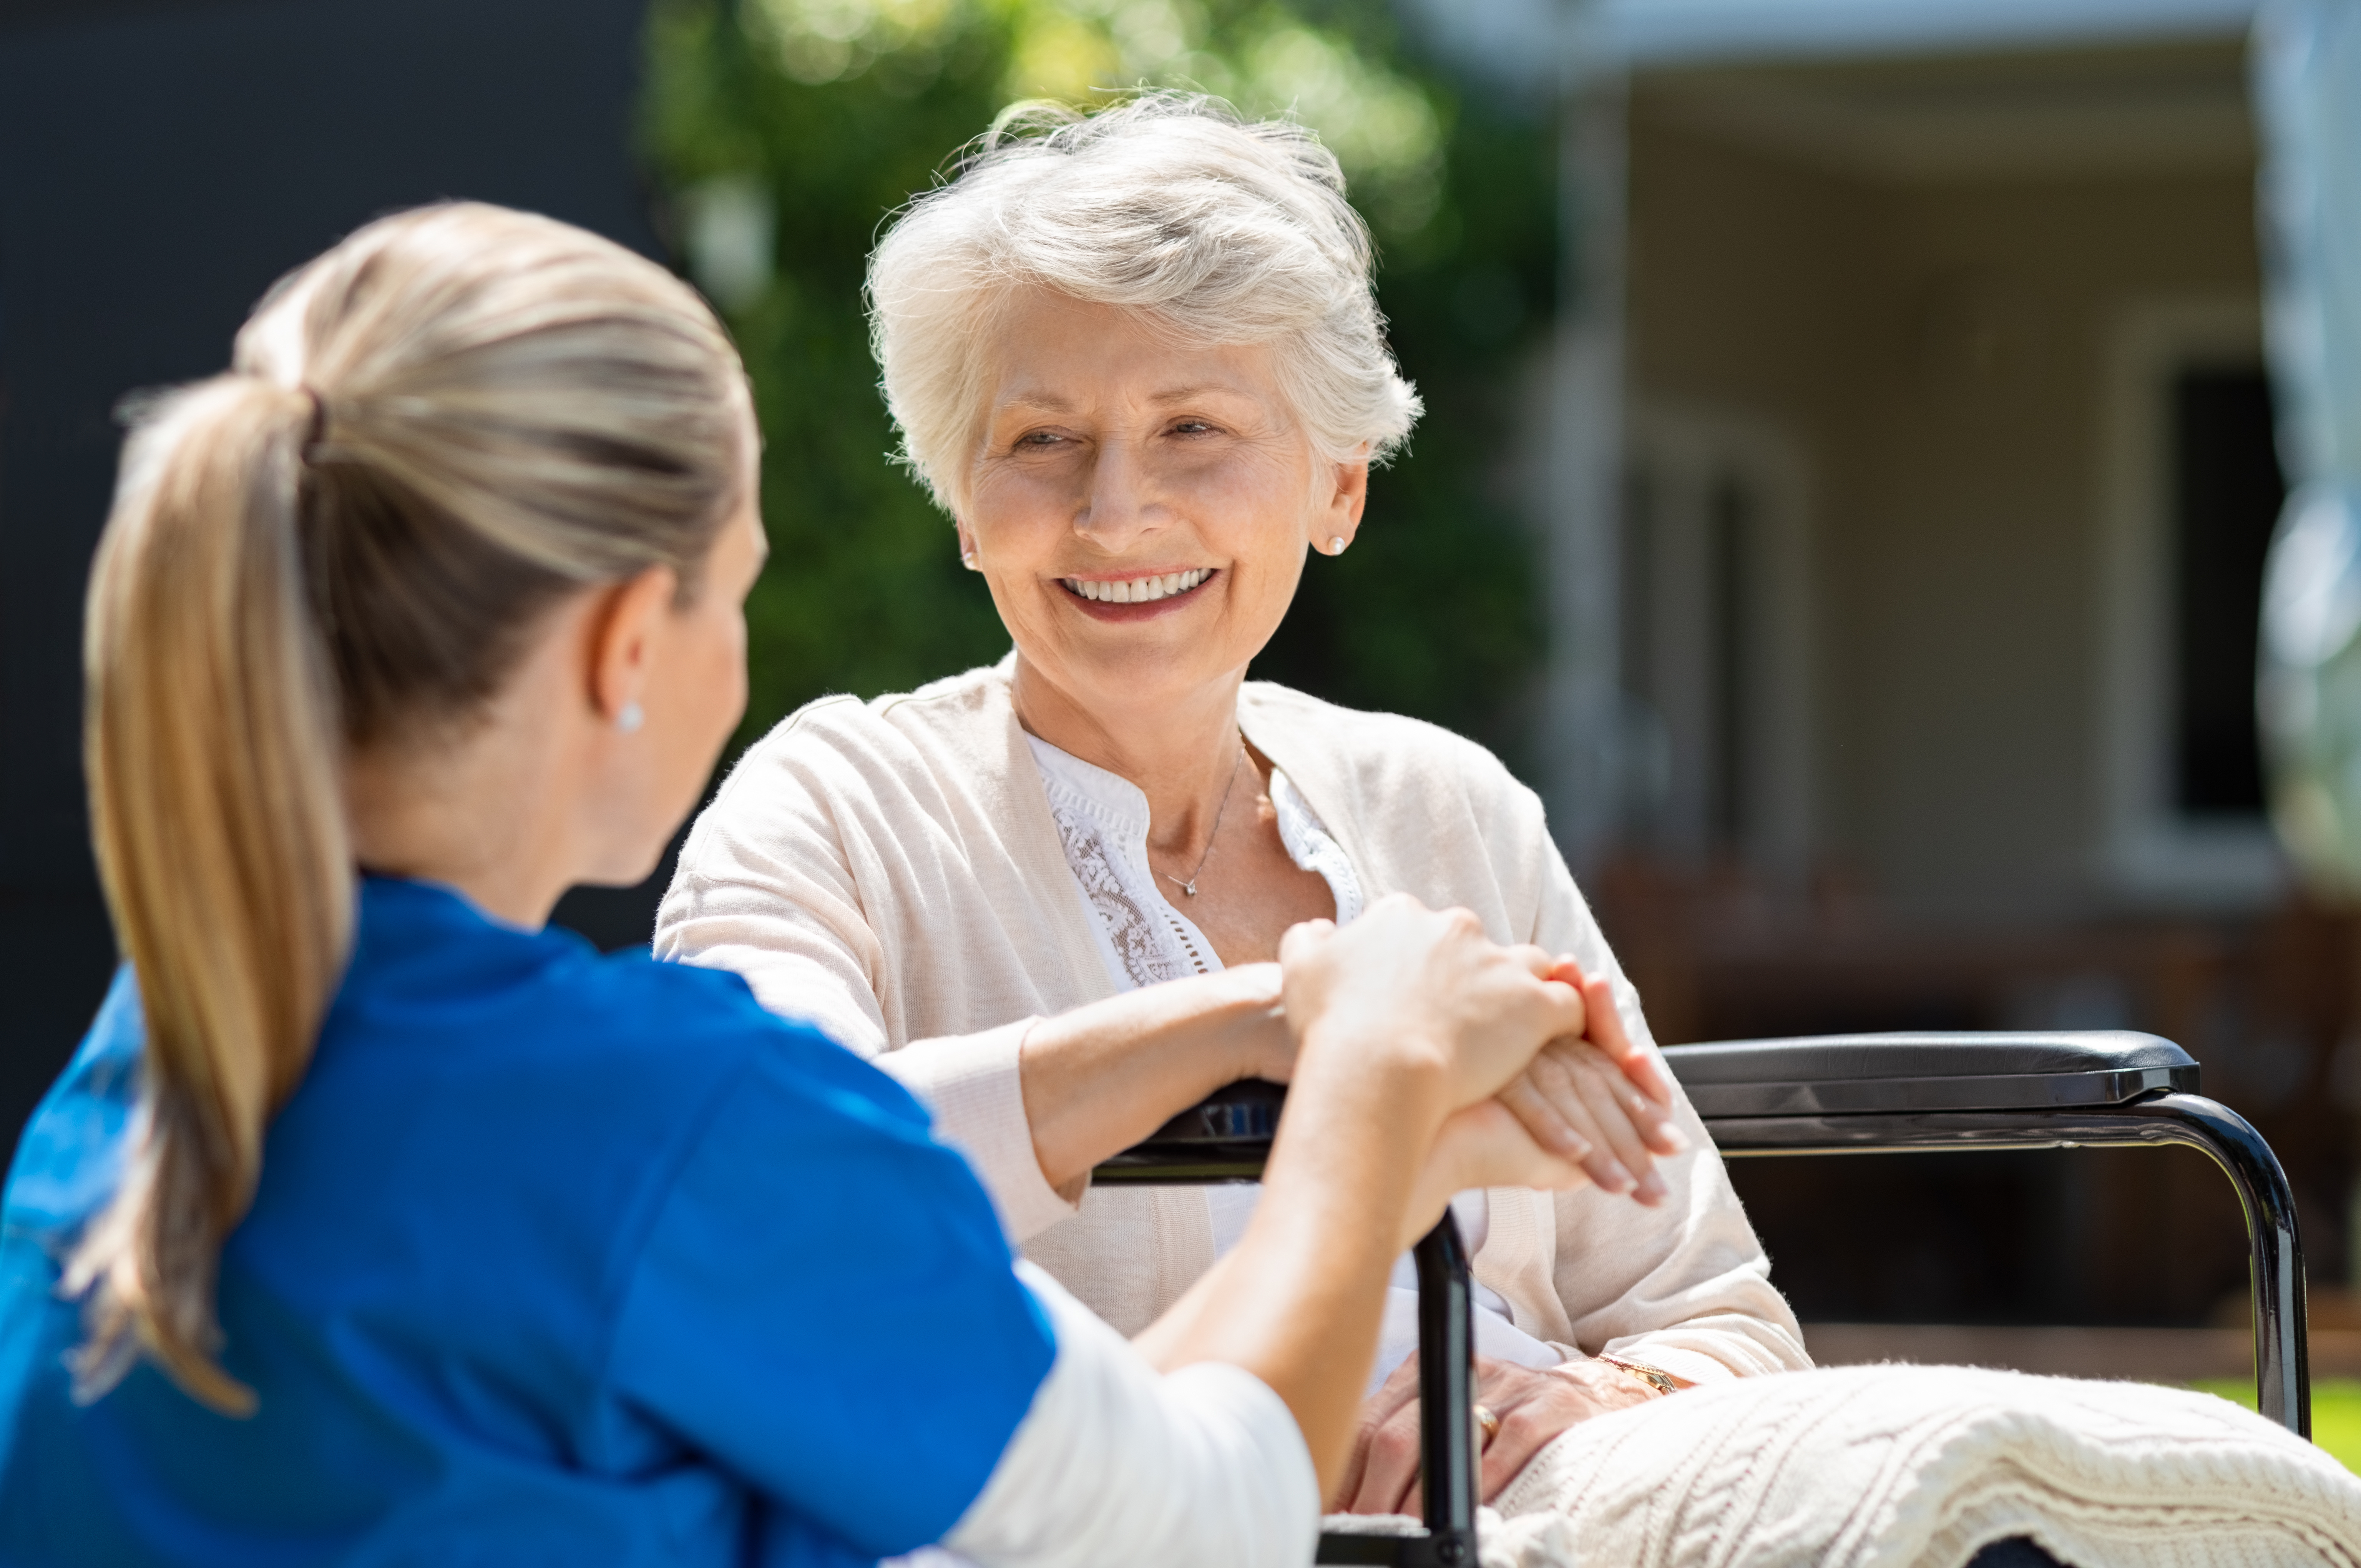 What Questions to Ask About Senior Living